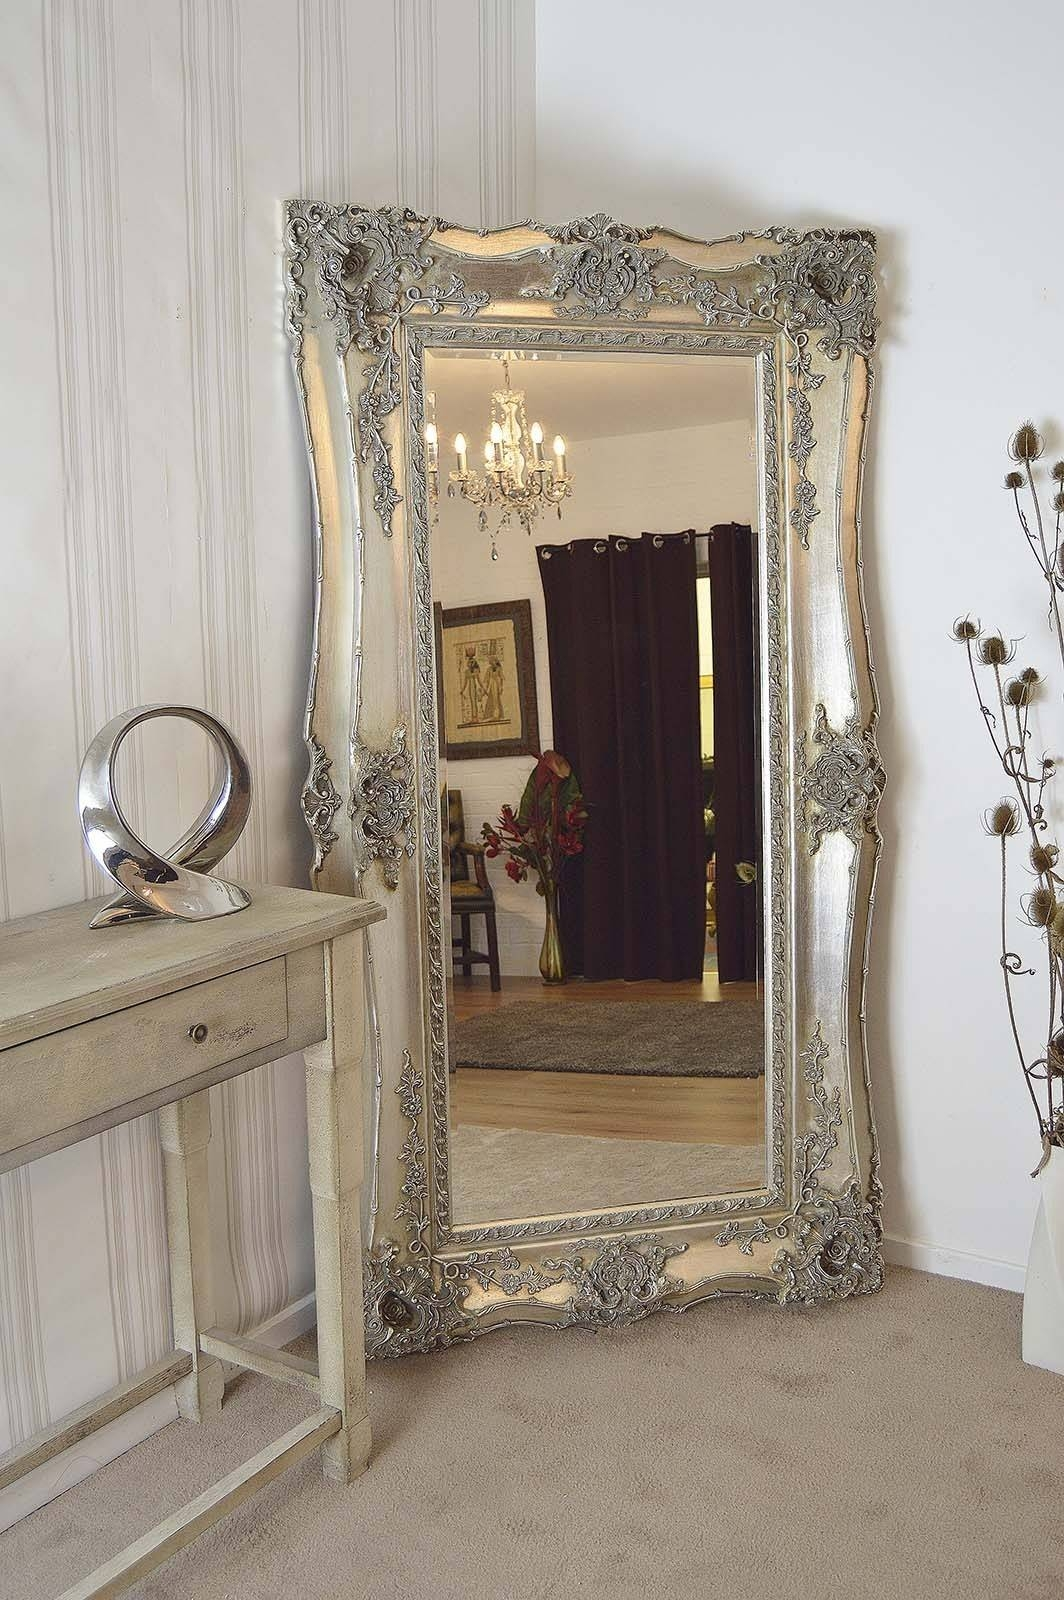 Extra Large Framed Mirrors 105 Trendy Interior Or Plain Design with Large White Ornate Mirrors (Image 6 of 25)